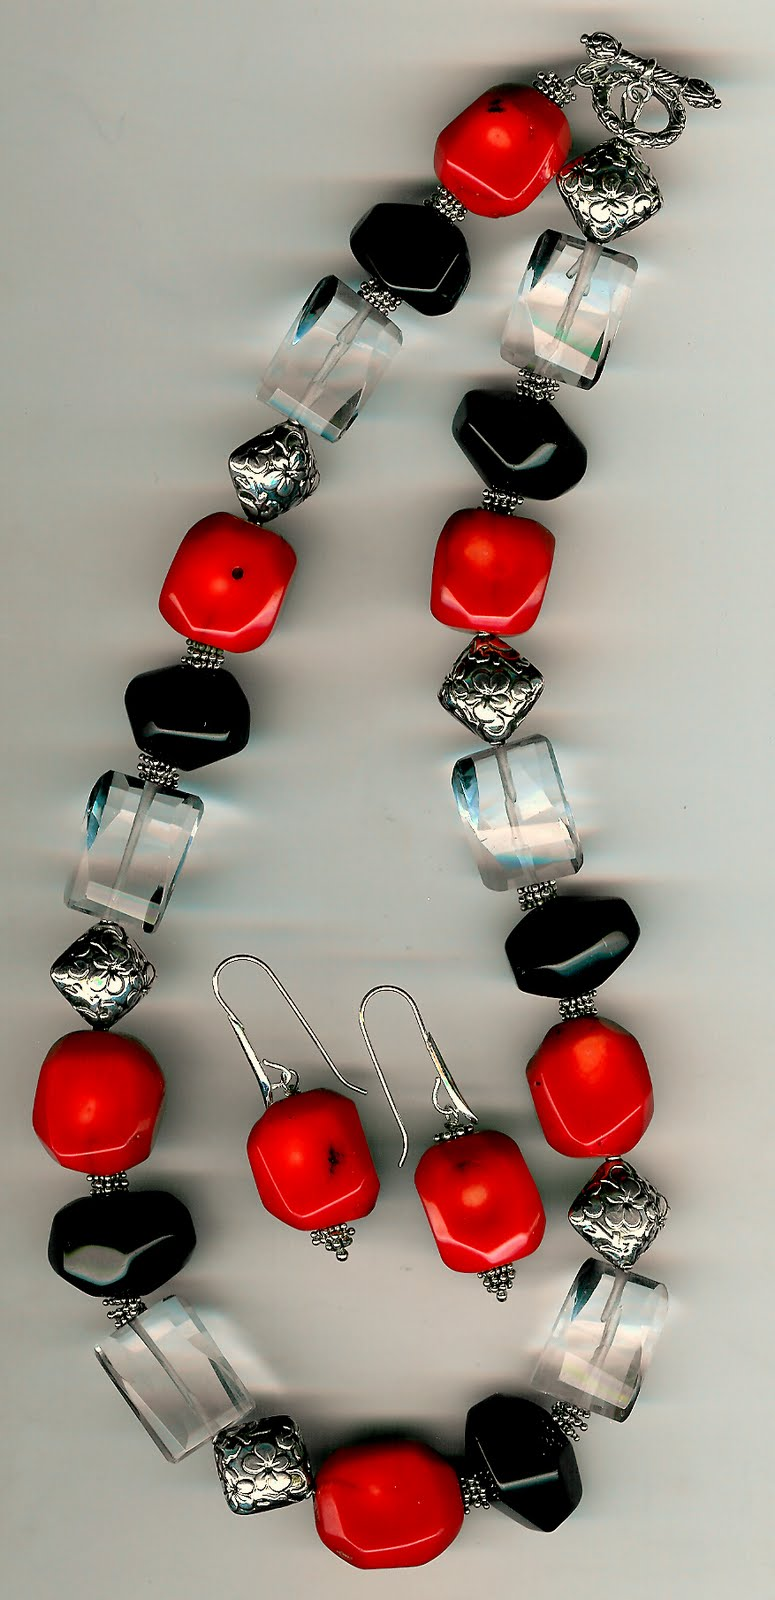 138. Coral, Fluorite, Onyx with Bali Sterling Silver + Earrings